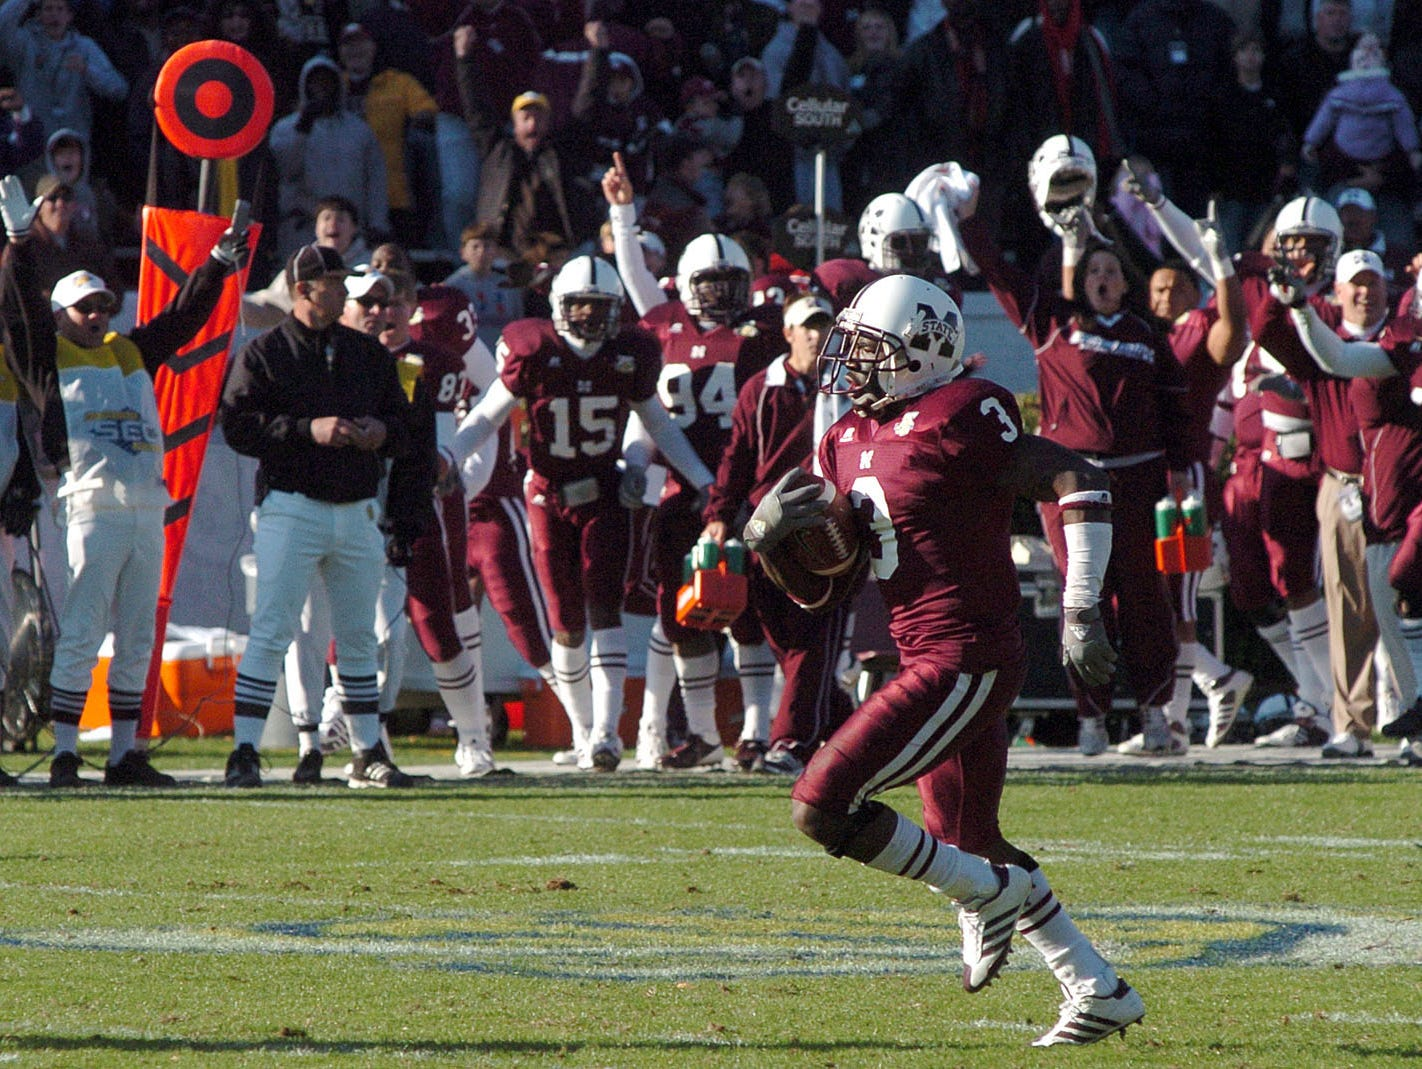 Mississippi State defensive back Derek Pegues tied the 2007 Egg Bowl by running back a punt return for a touchdown in the fourth quarter.